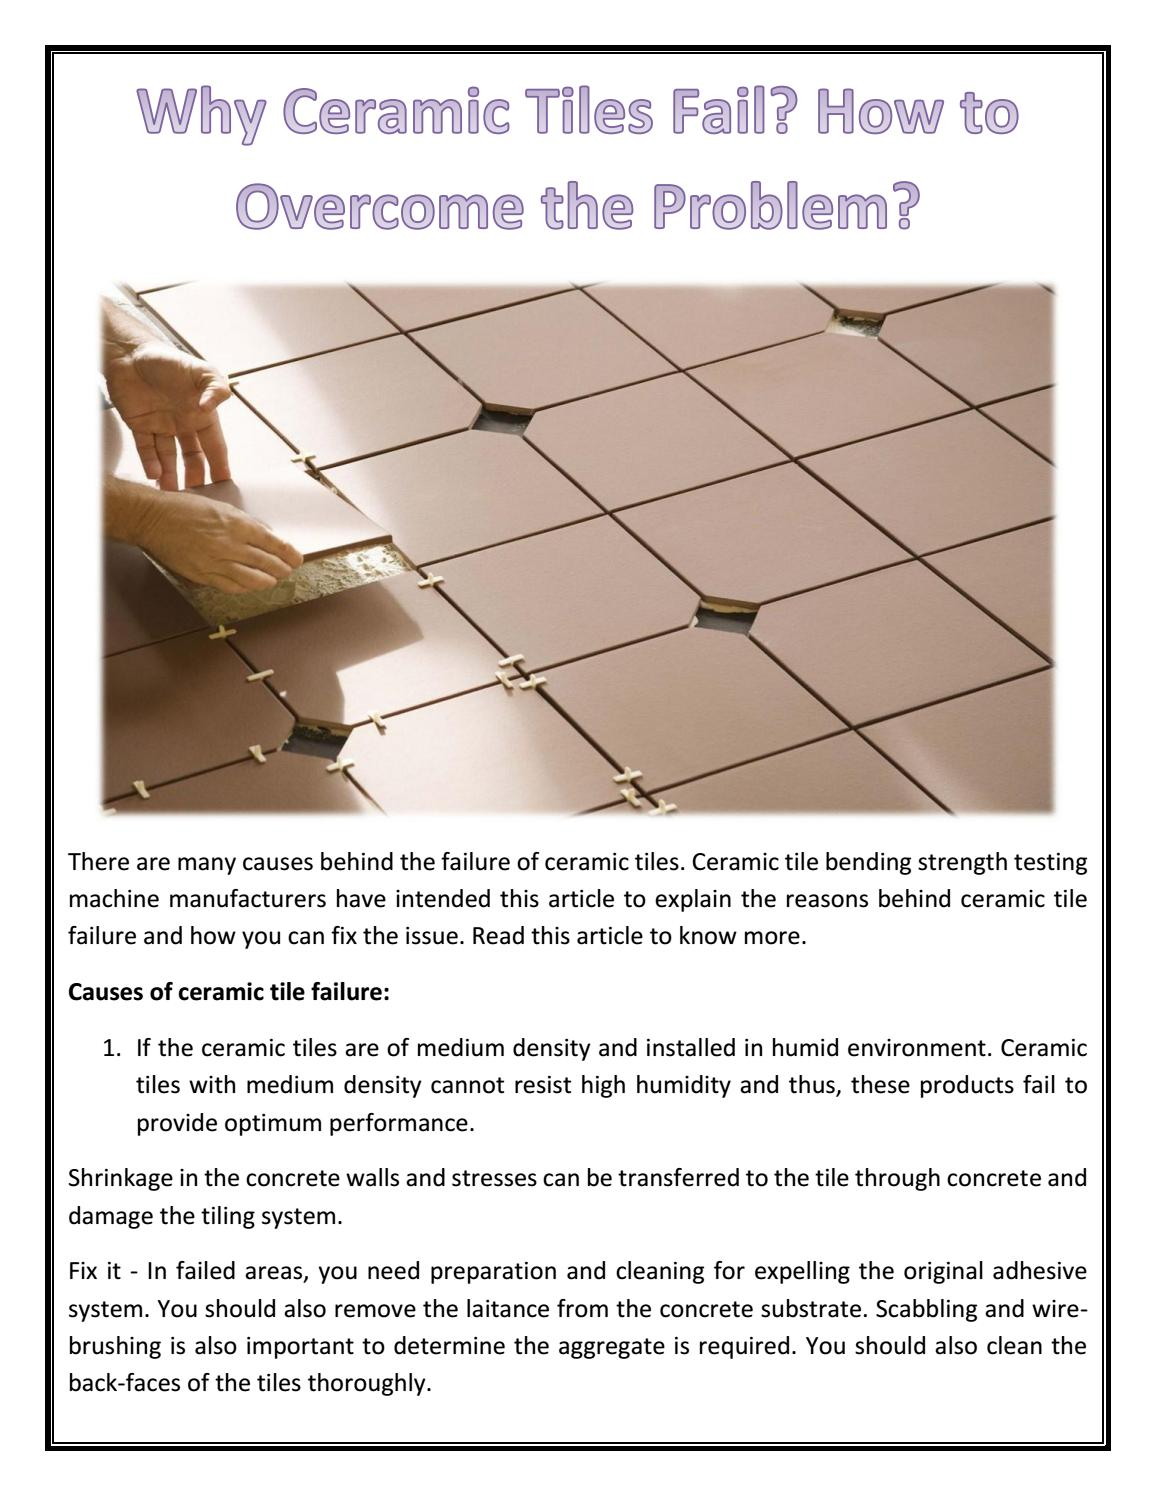 Why Ceramic Tiles Fail How To Overcome The Problem By Eie